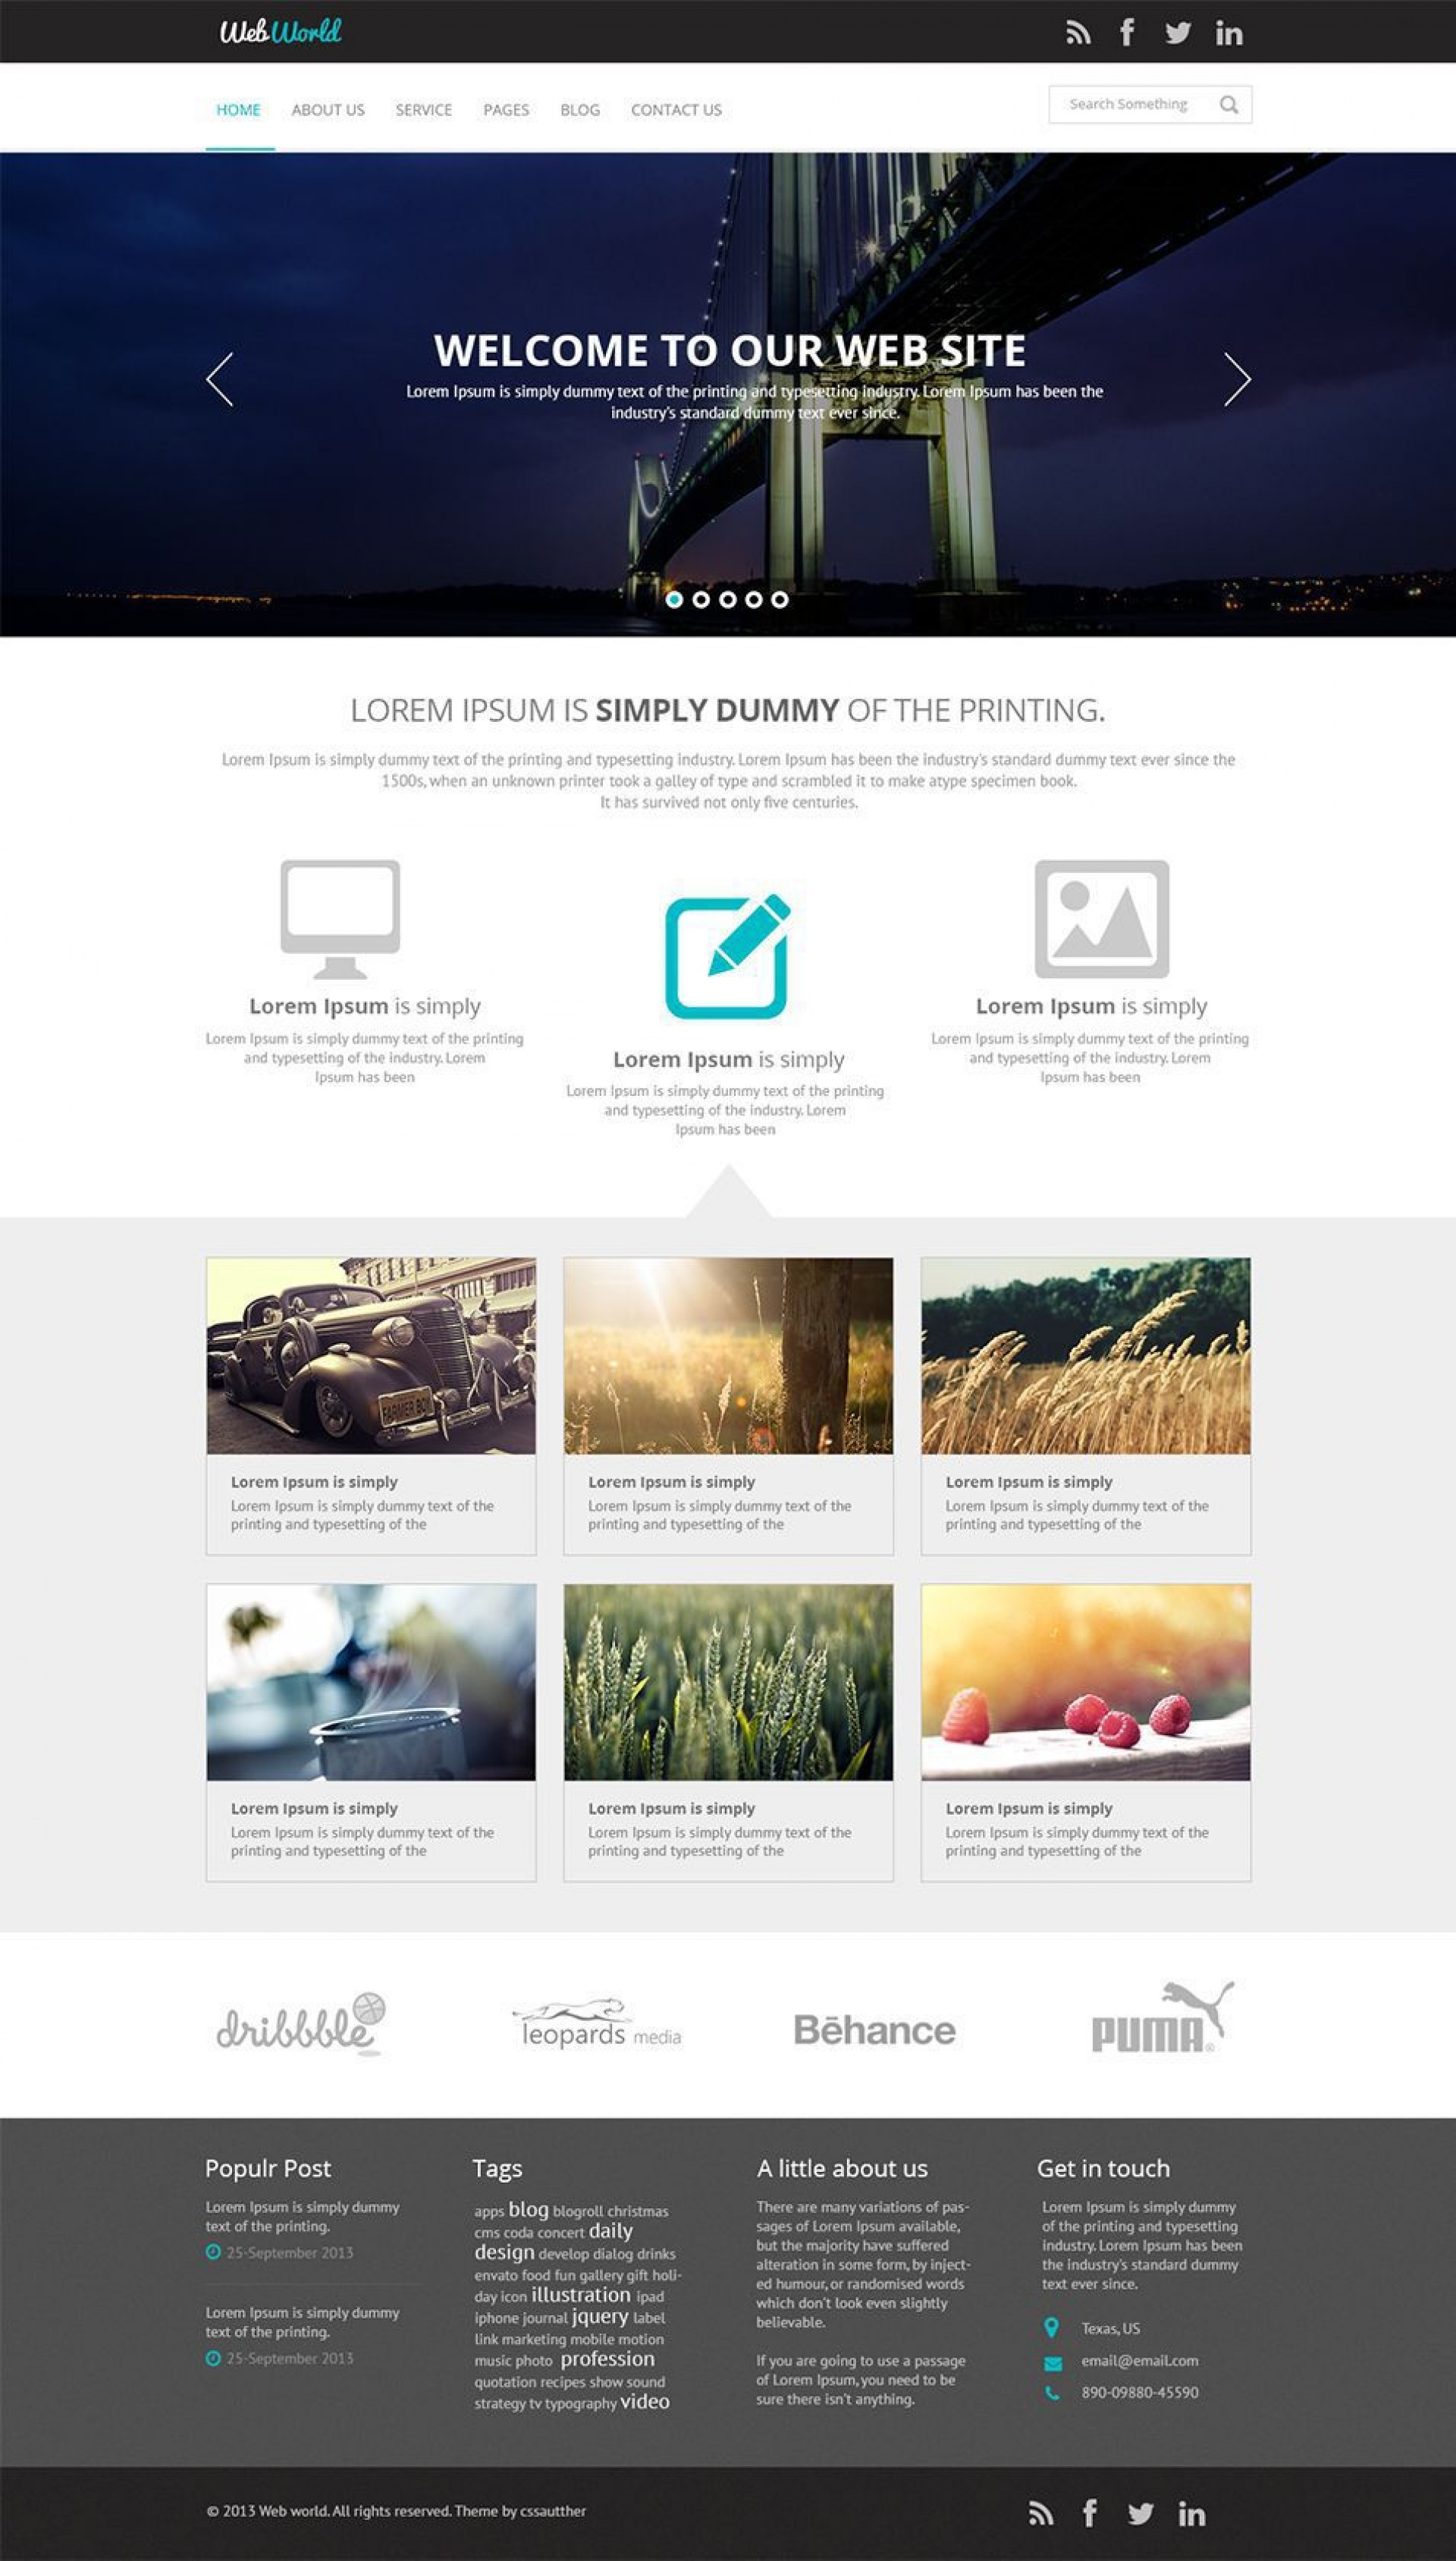 003 Wondrou Free Busines Website Template Download Html And Cs Jquery Image  Responsive For It Company1920